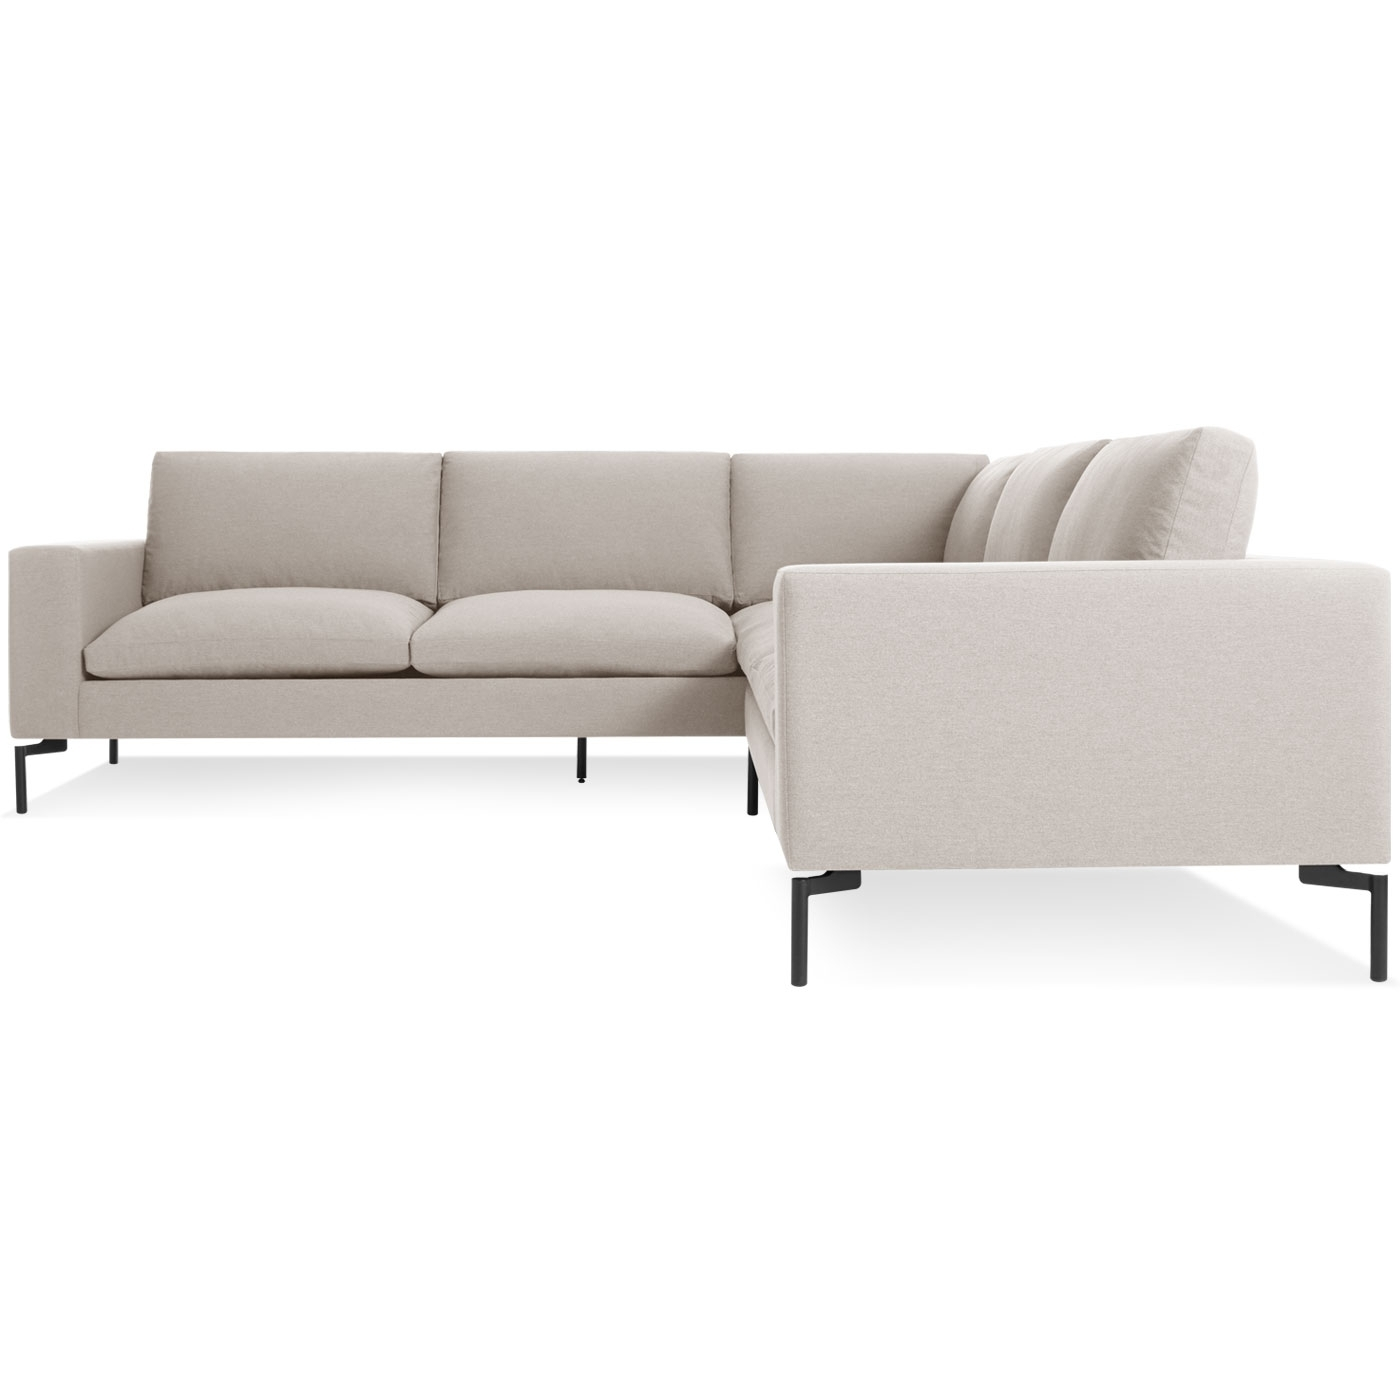 Uncategorized : L Sofa With Trendy New Standard Small Sectional Sofa With Regard To Sectional Sofas In Philippines (Image 10 of 10)